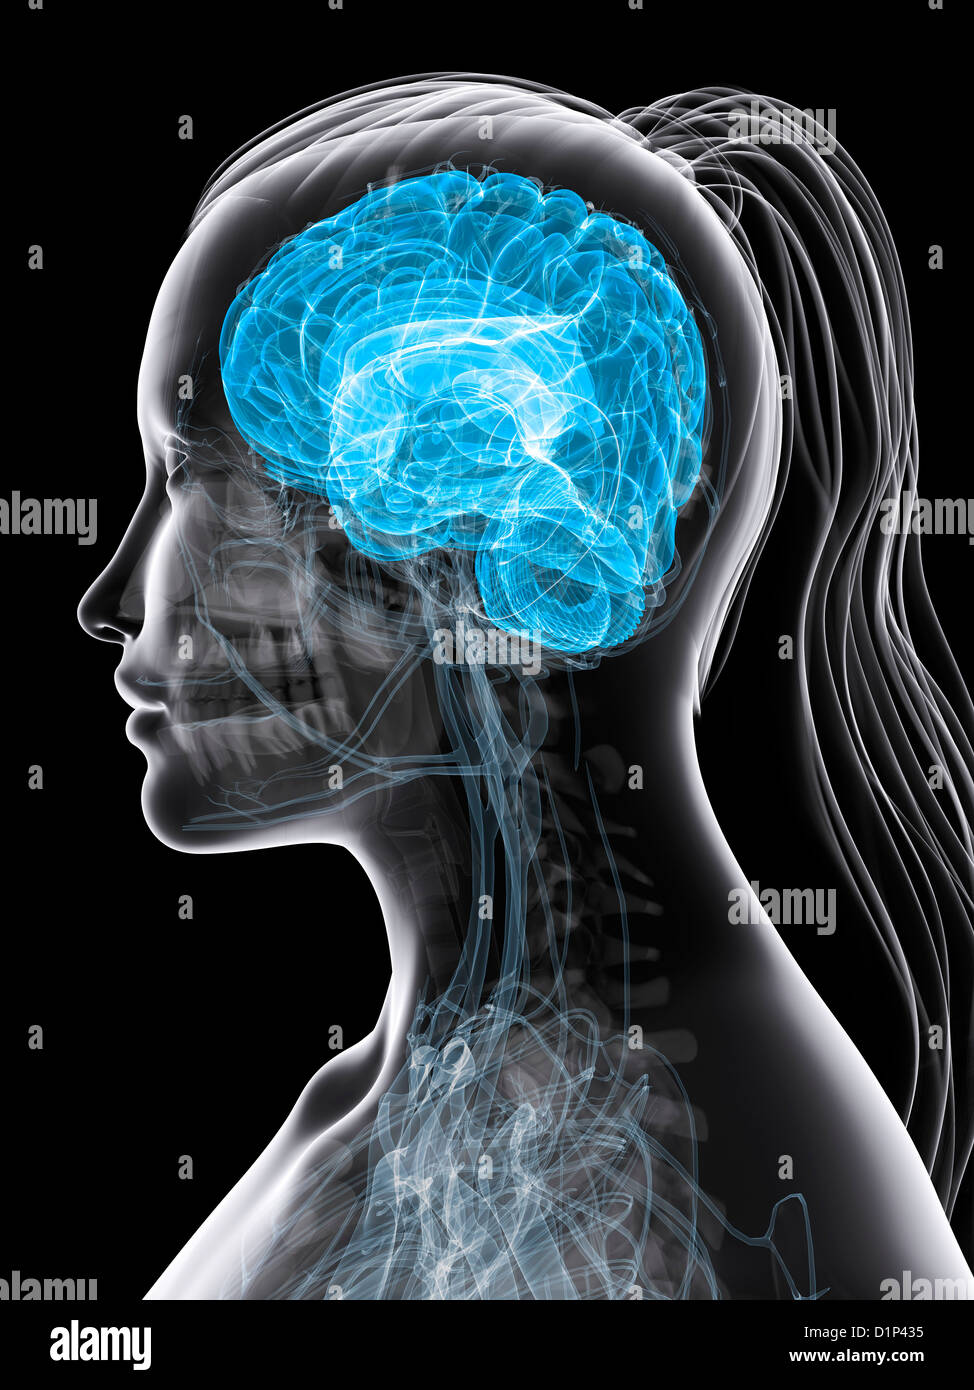 Cerveau féminin, artwork Photo Stock